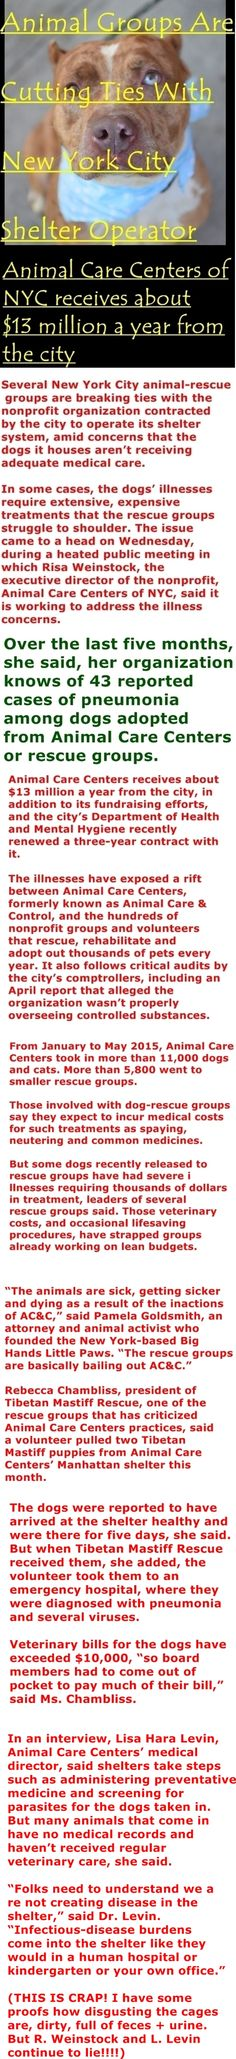 written by Melanie Grayce West for THE WALL STREET JOURNAL http://www.wsj.com/articles/animal-groups-are-cutting-ties-with-new-york-city-shelter-operator-1435192568